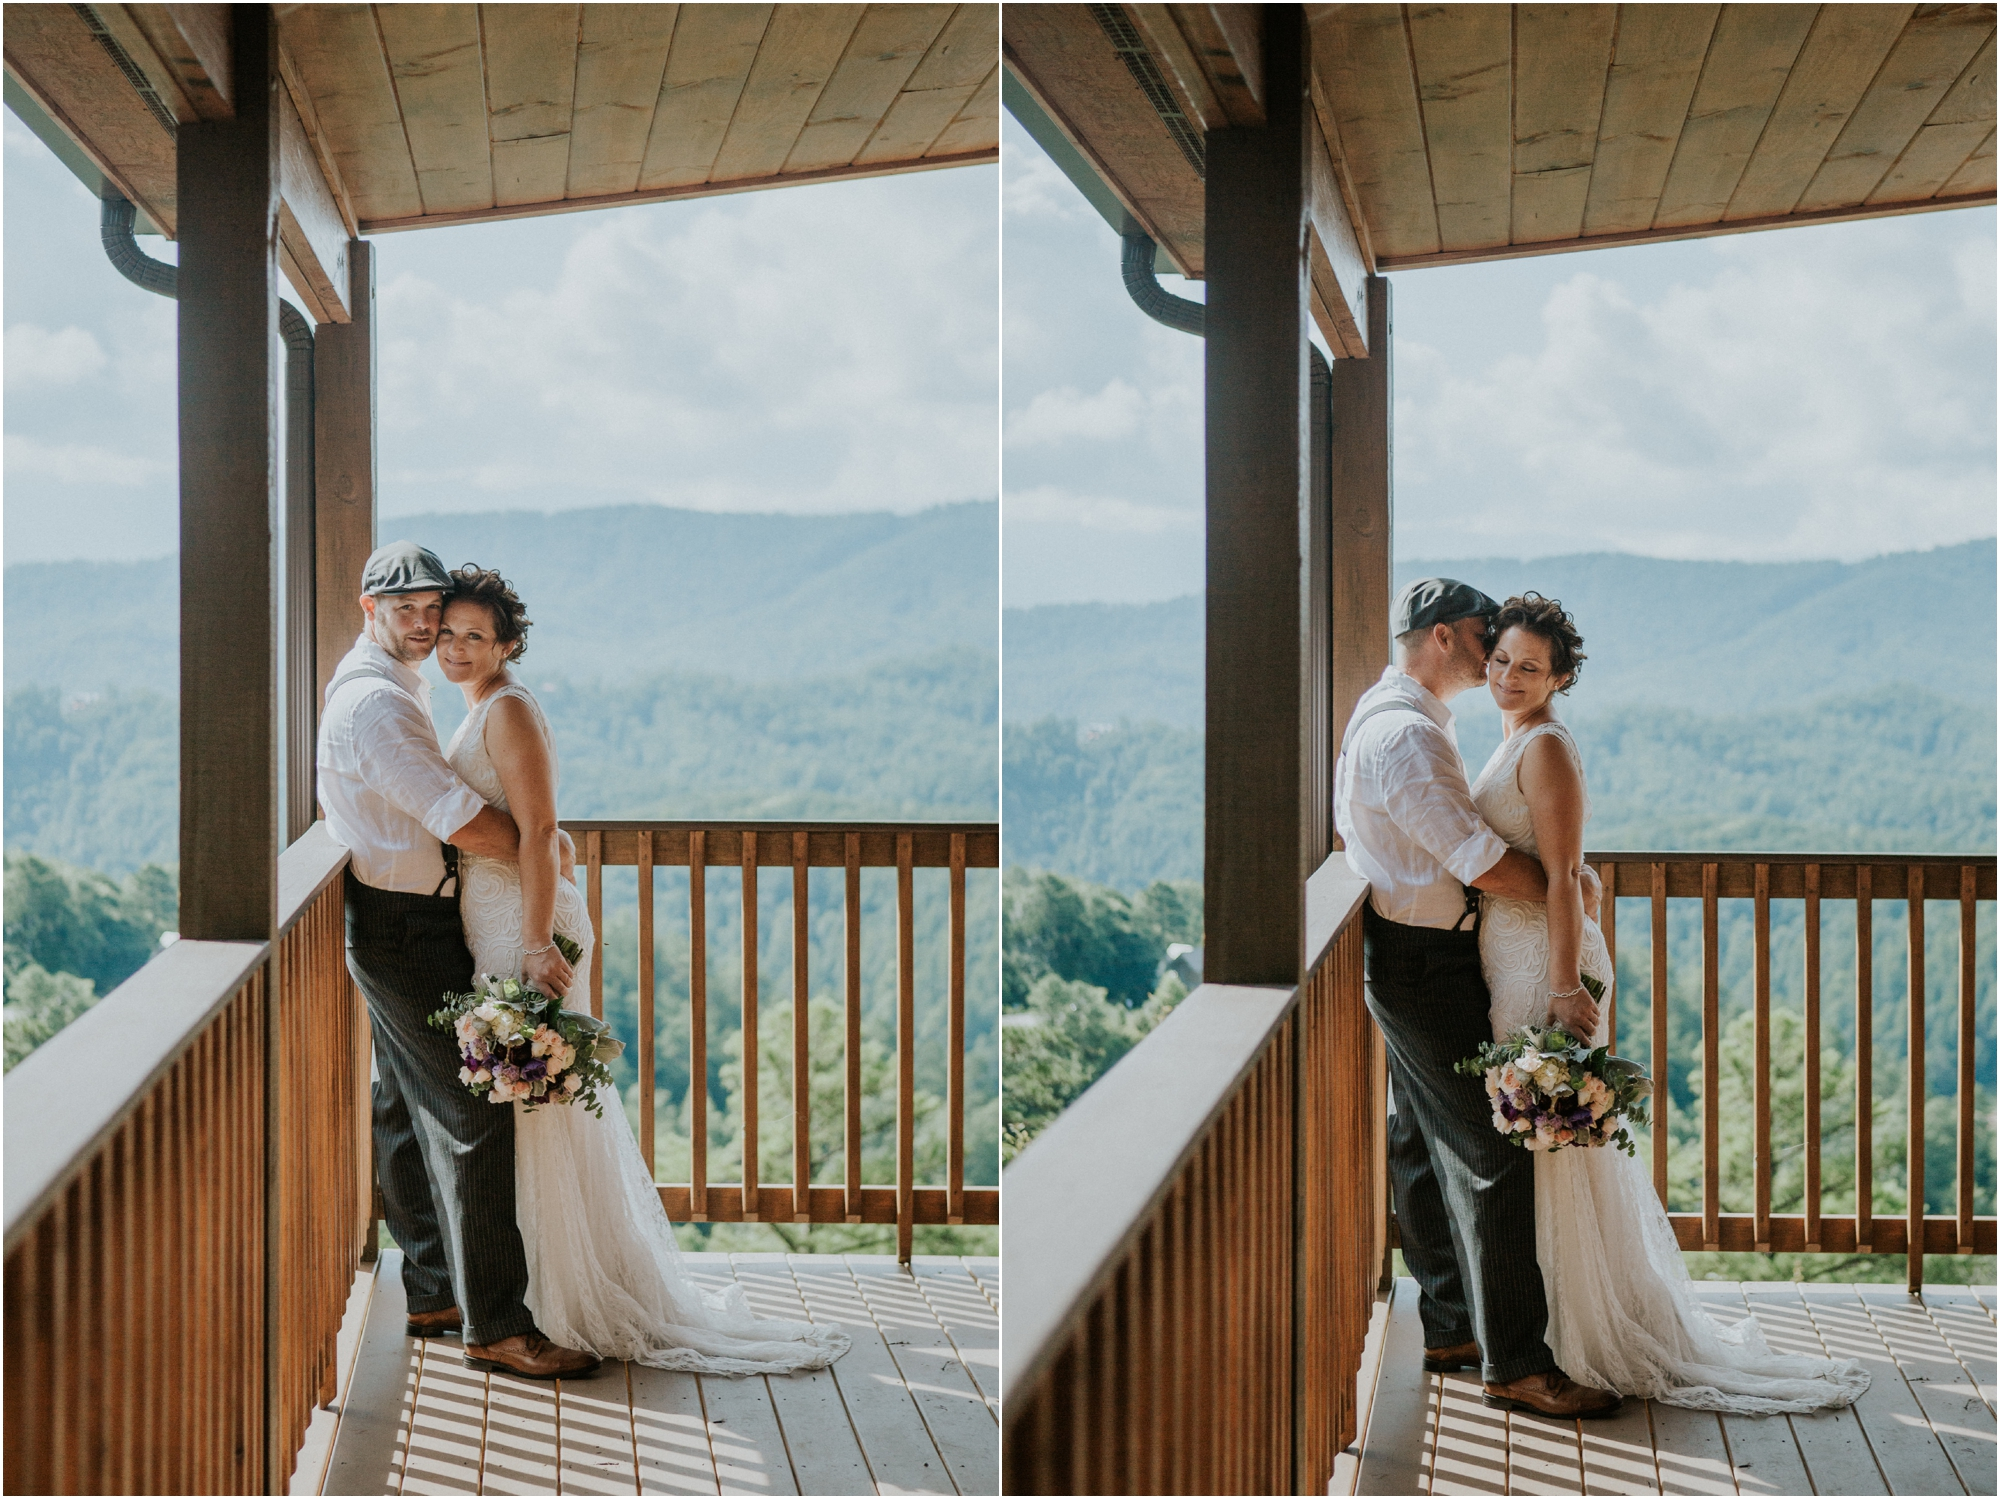 cabin-parkside-resort-the-magnolia-venue-tennessee-mountain-views-intimate-wedding_0073.jpg